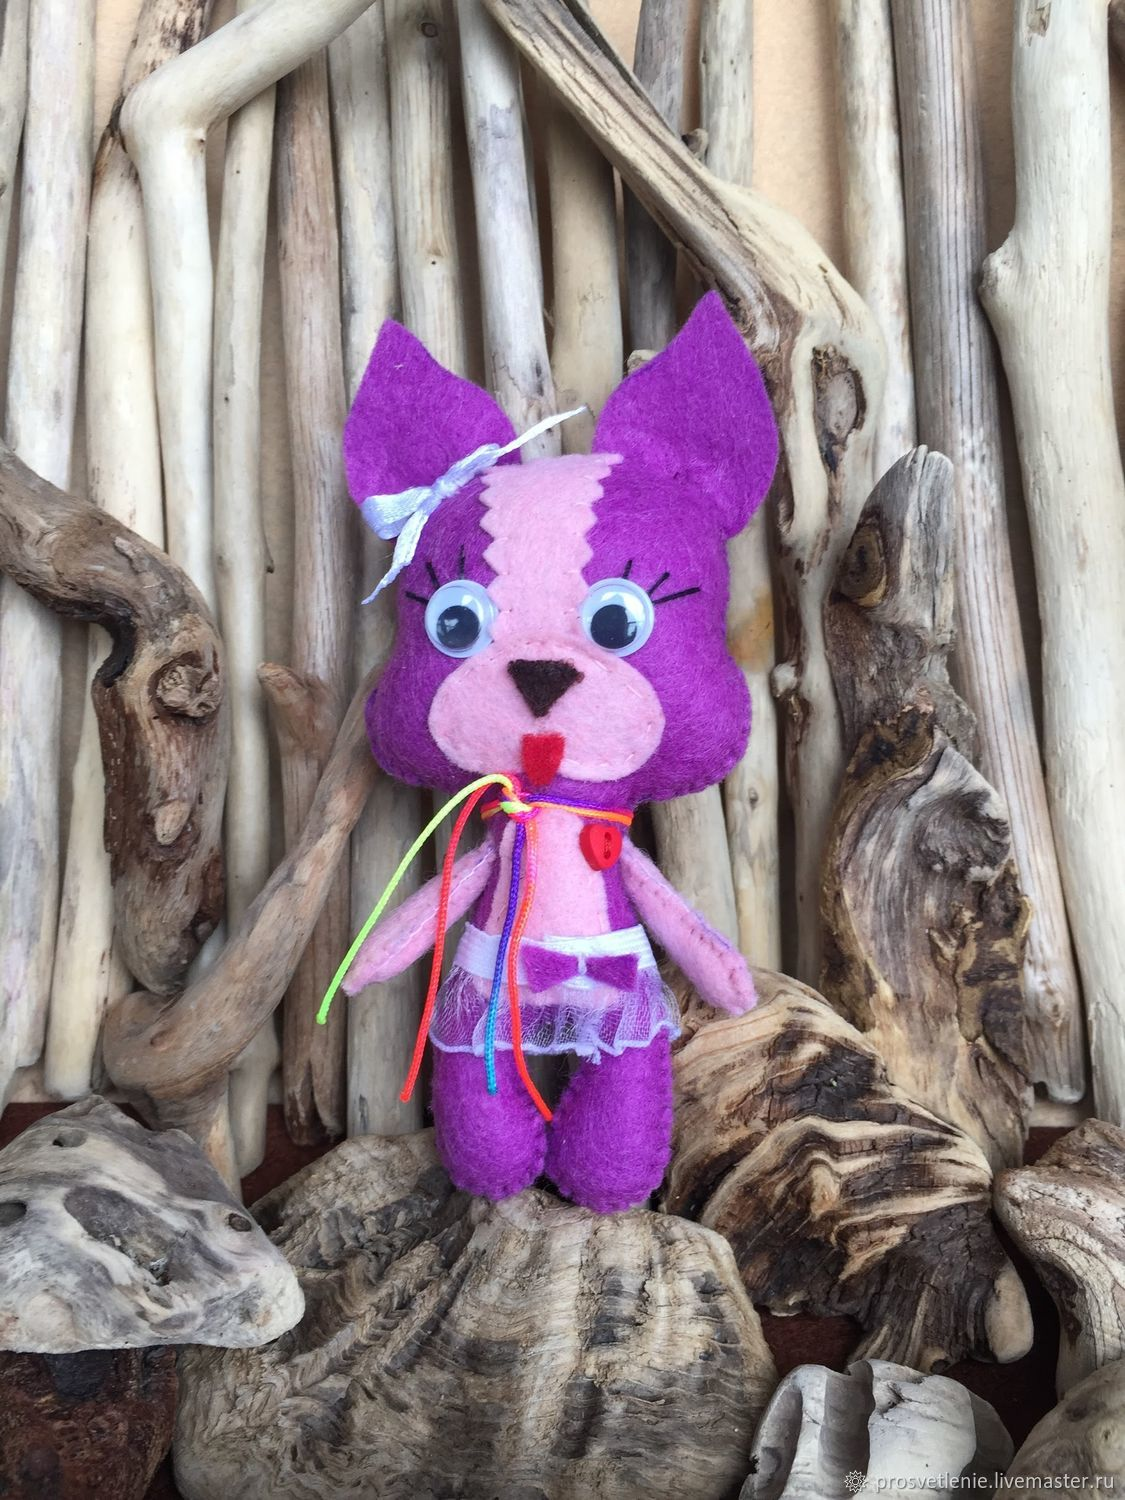 The dog toy is a symbol of 2018 talisman pendant in the car shop toy out of to buy a toy handmade symbol of 2018 at the fair masters buycottarizona Gallery